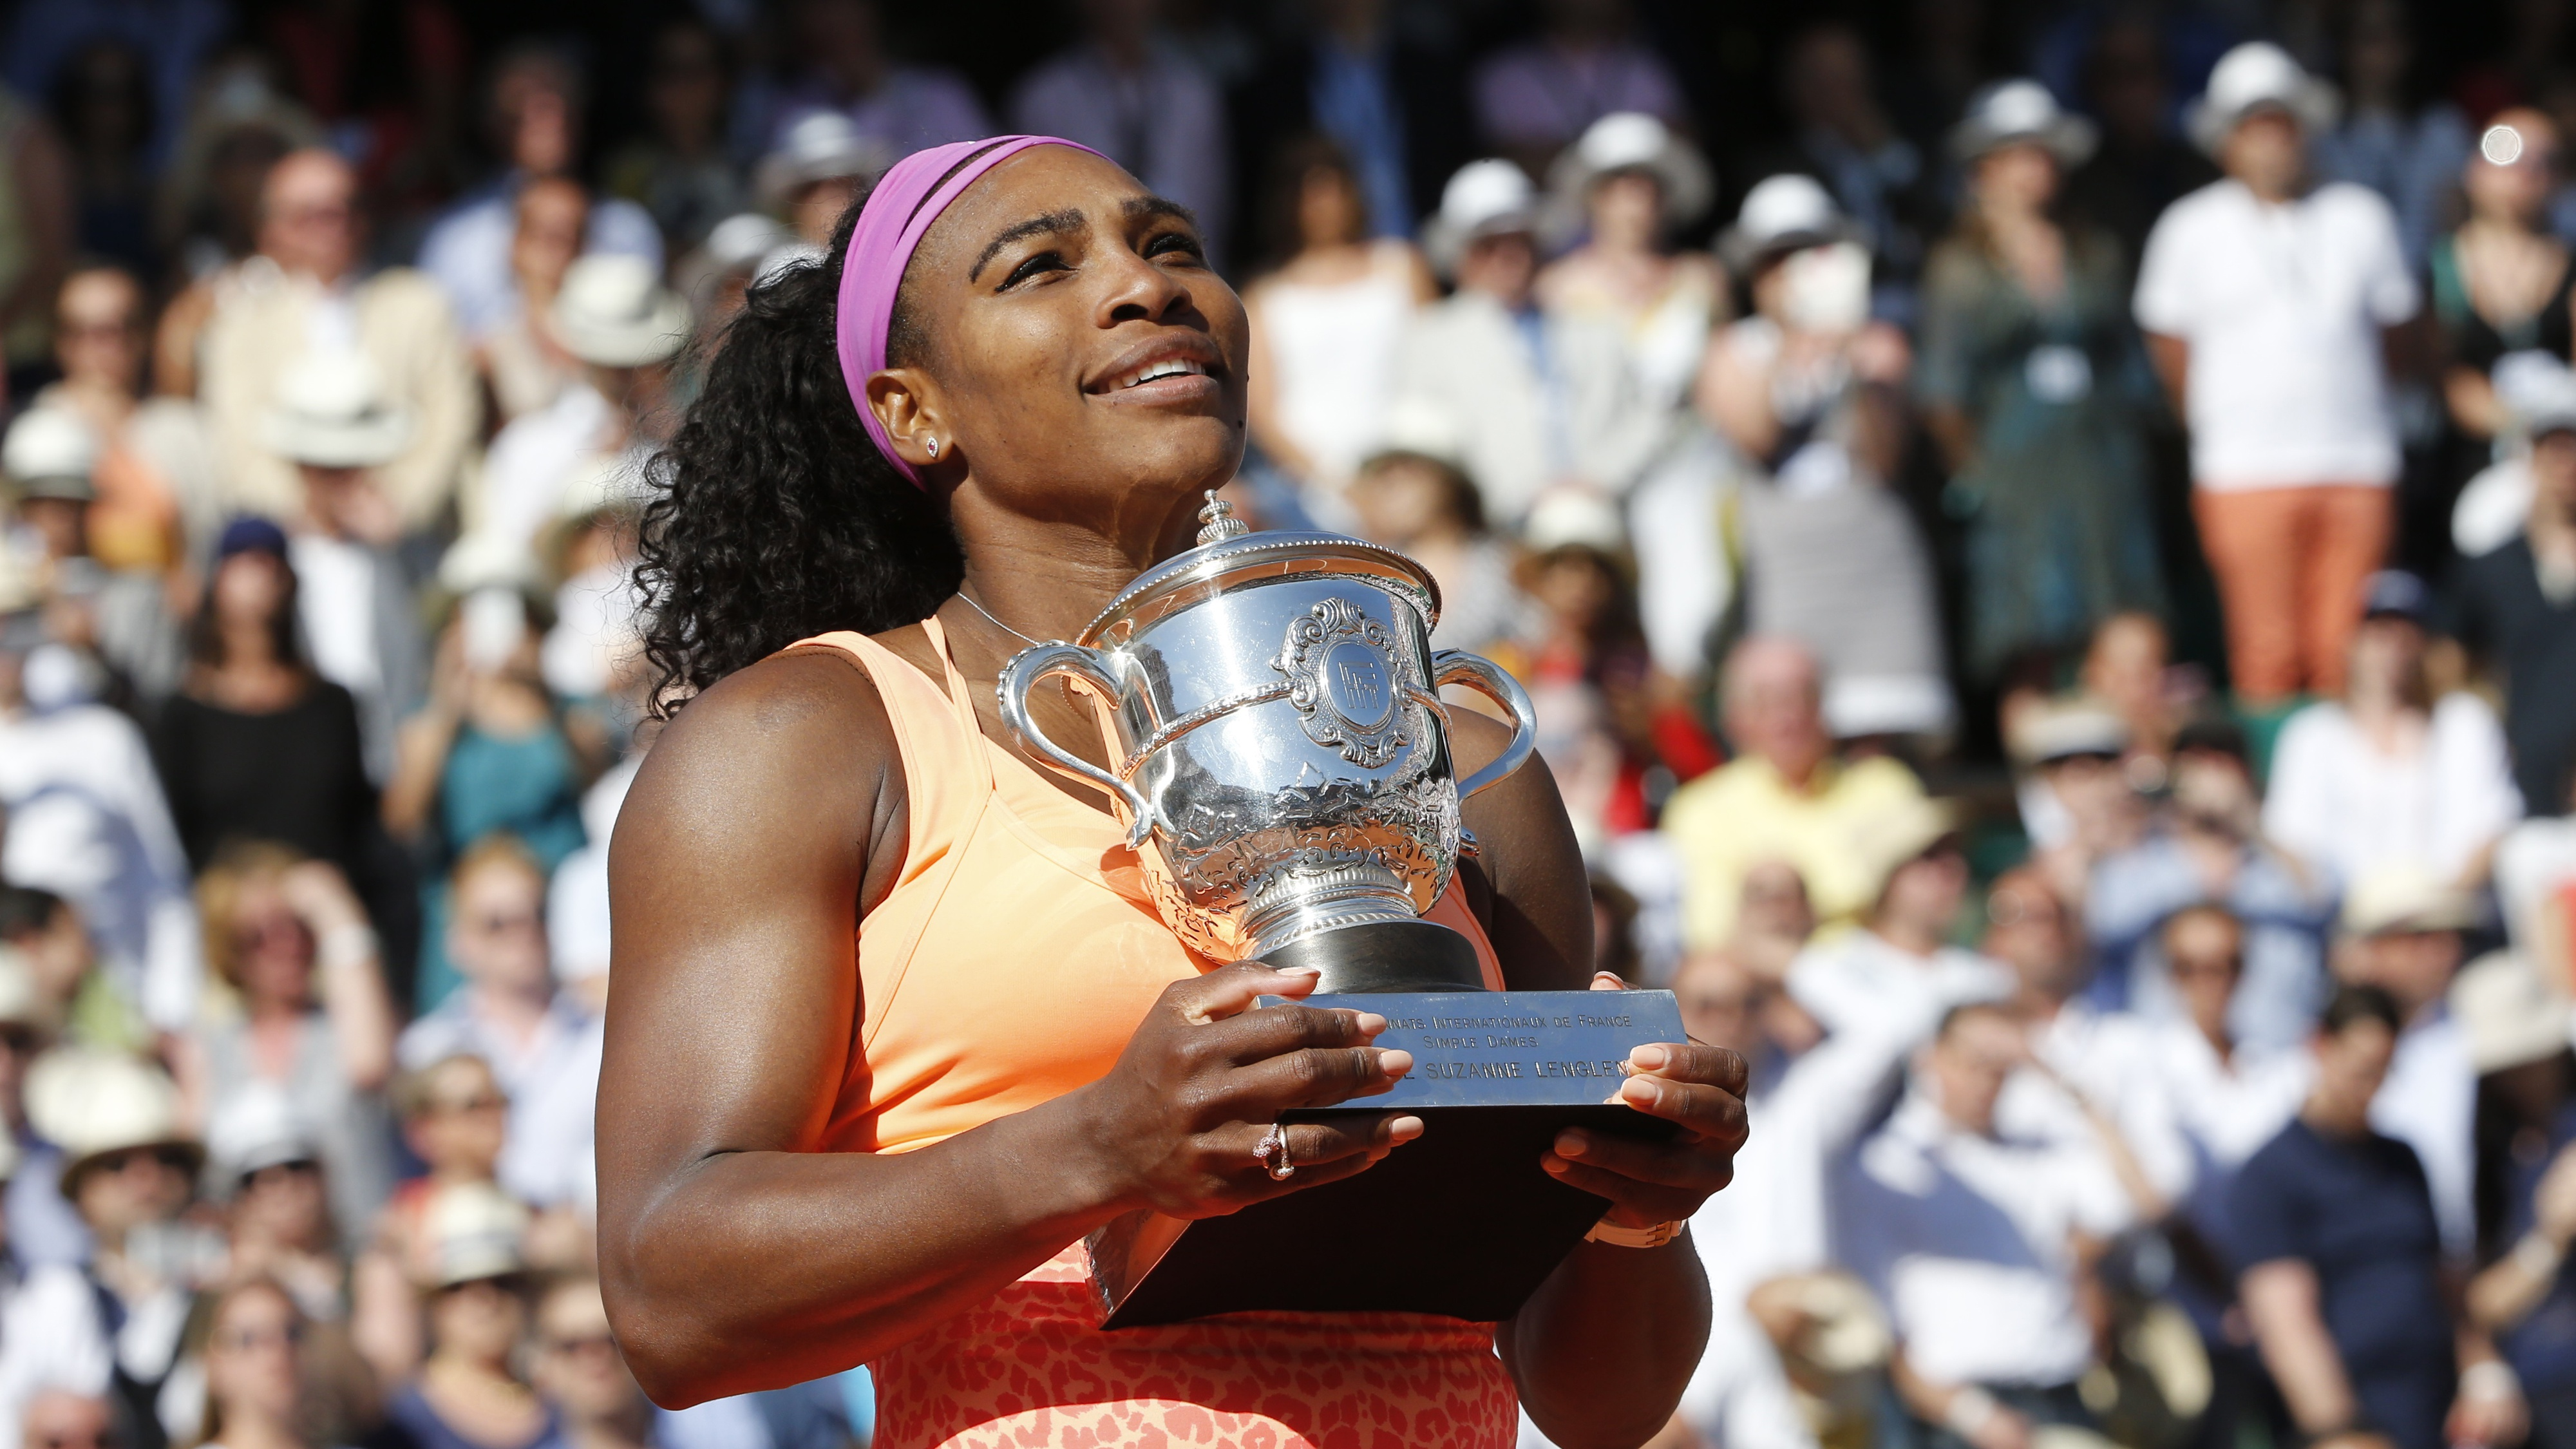 Greatest of all time fake serena williams nude pictures-3024